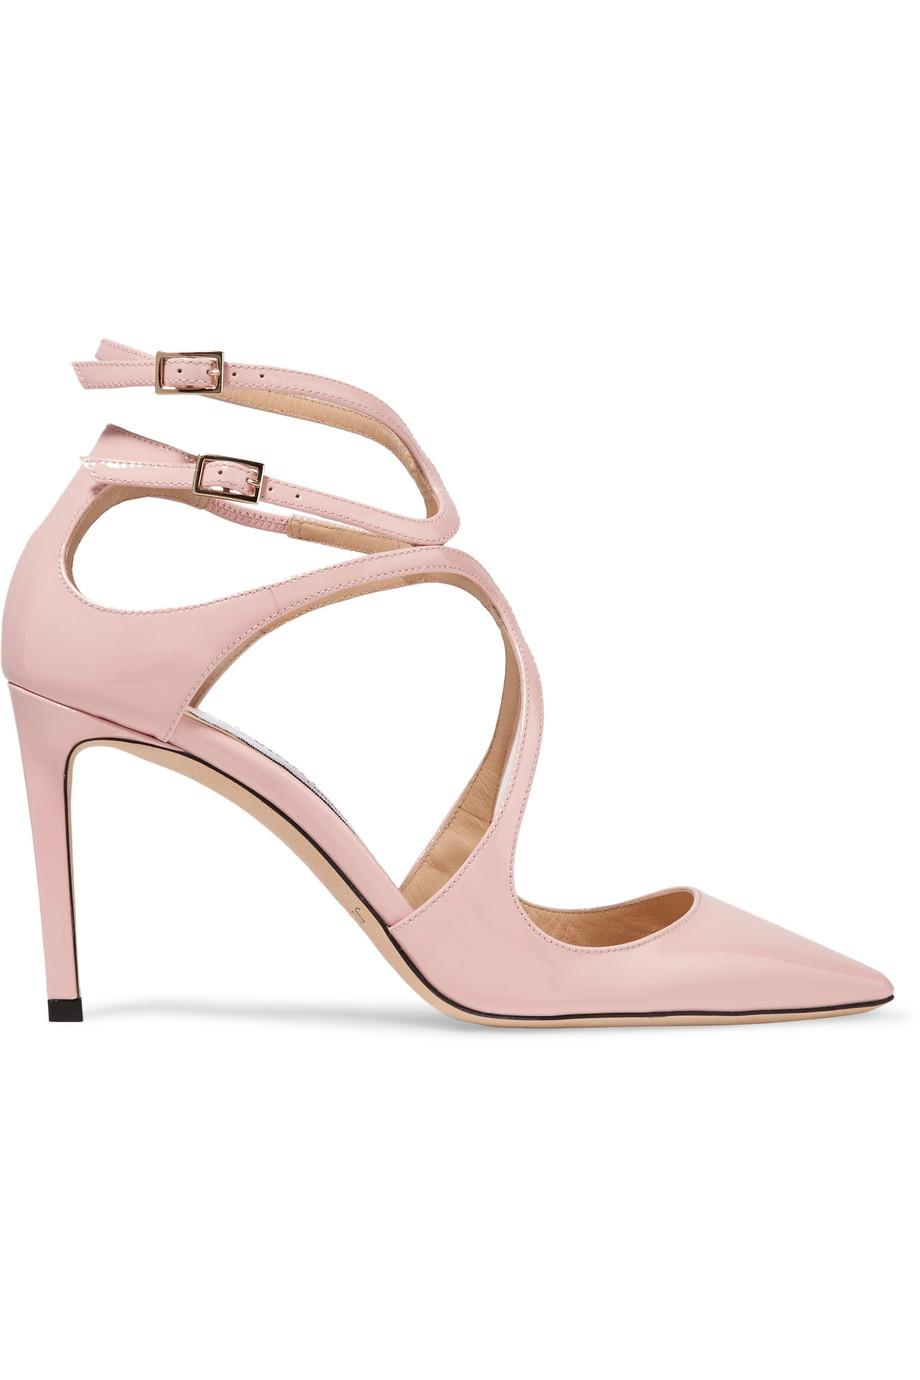 Lancer 85 Patent-leather Pumps - Baby pink Jimmy Choo London cqZ83l1EPM